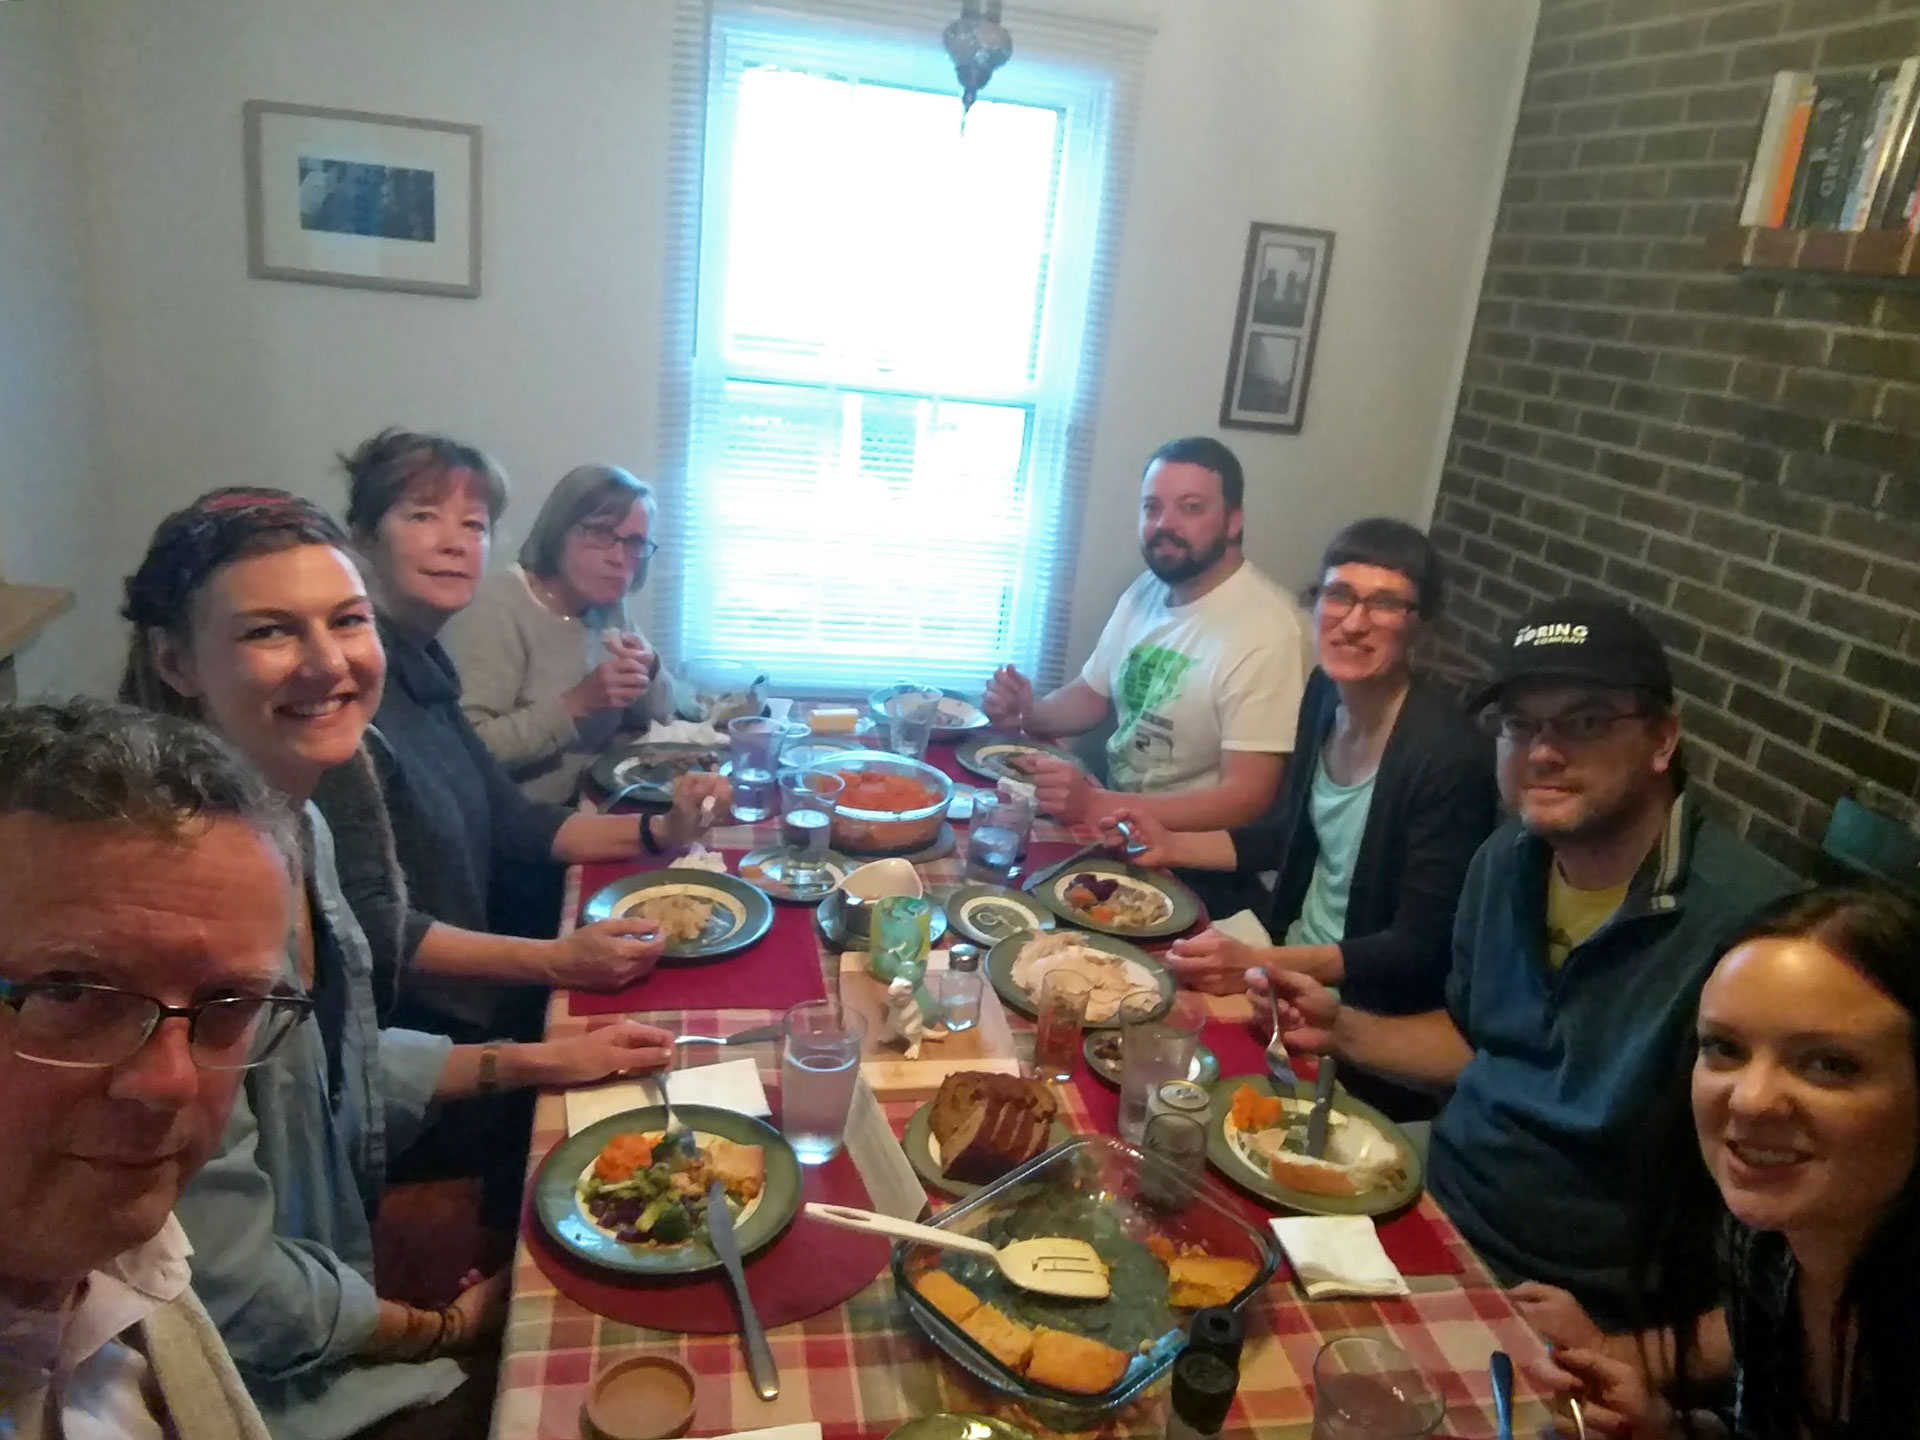 Thanksgiving table with food and family eating in Winchester, VA